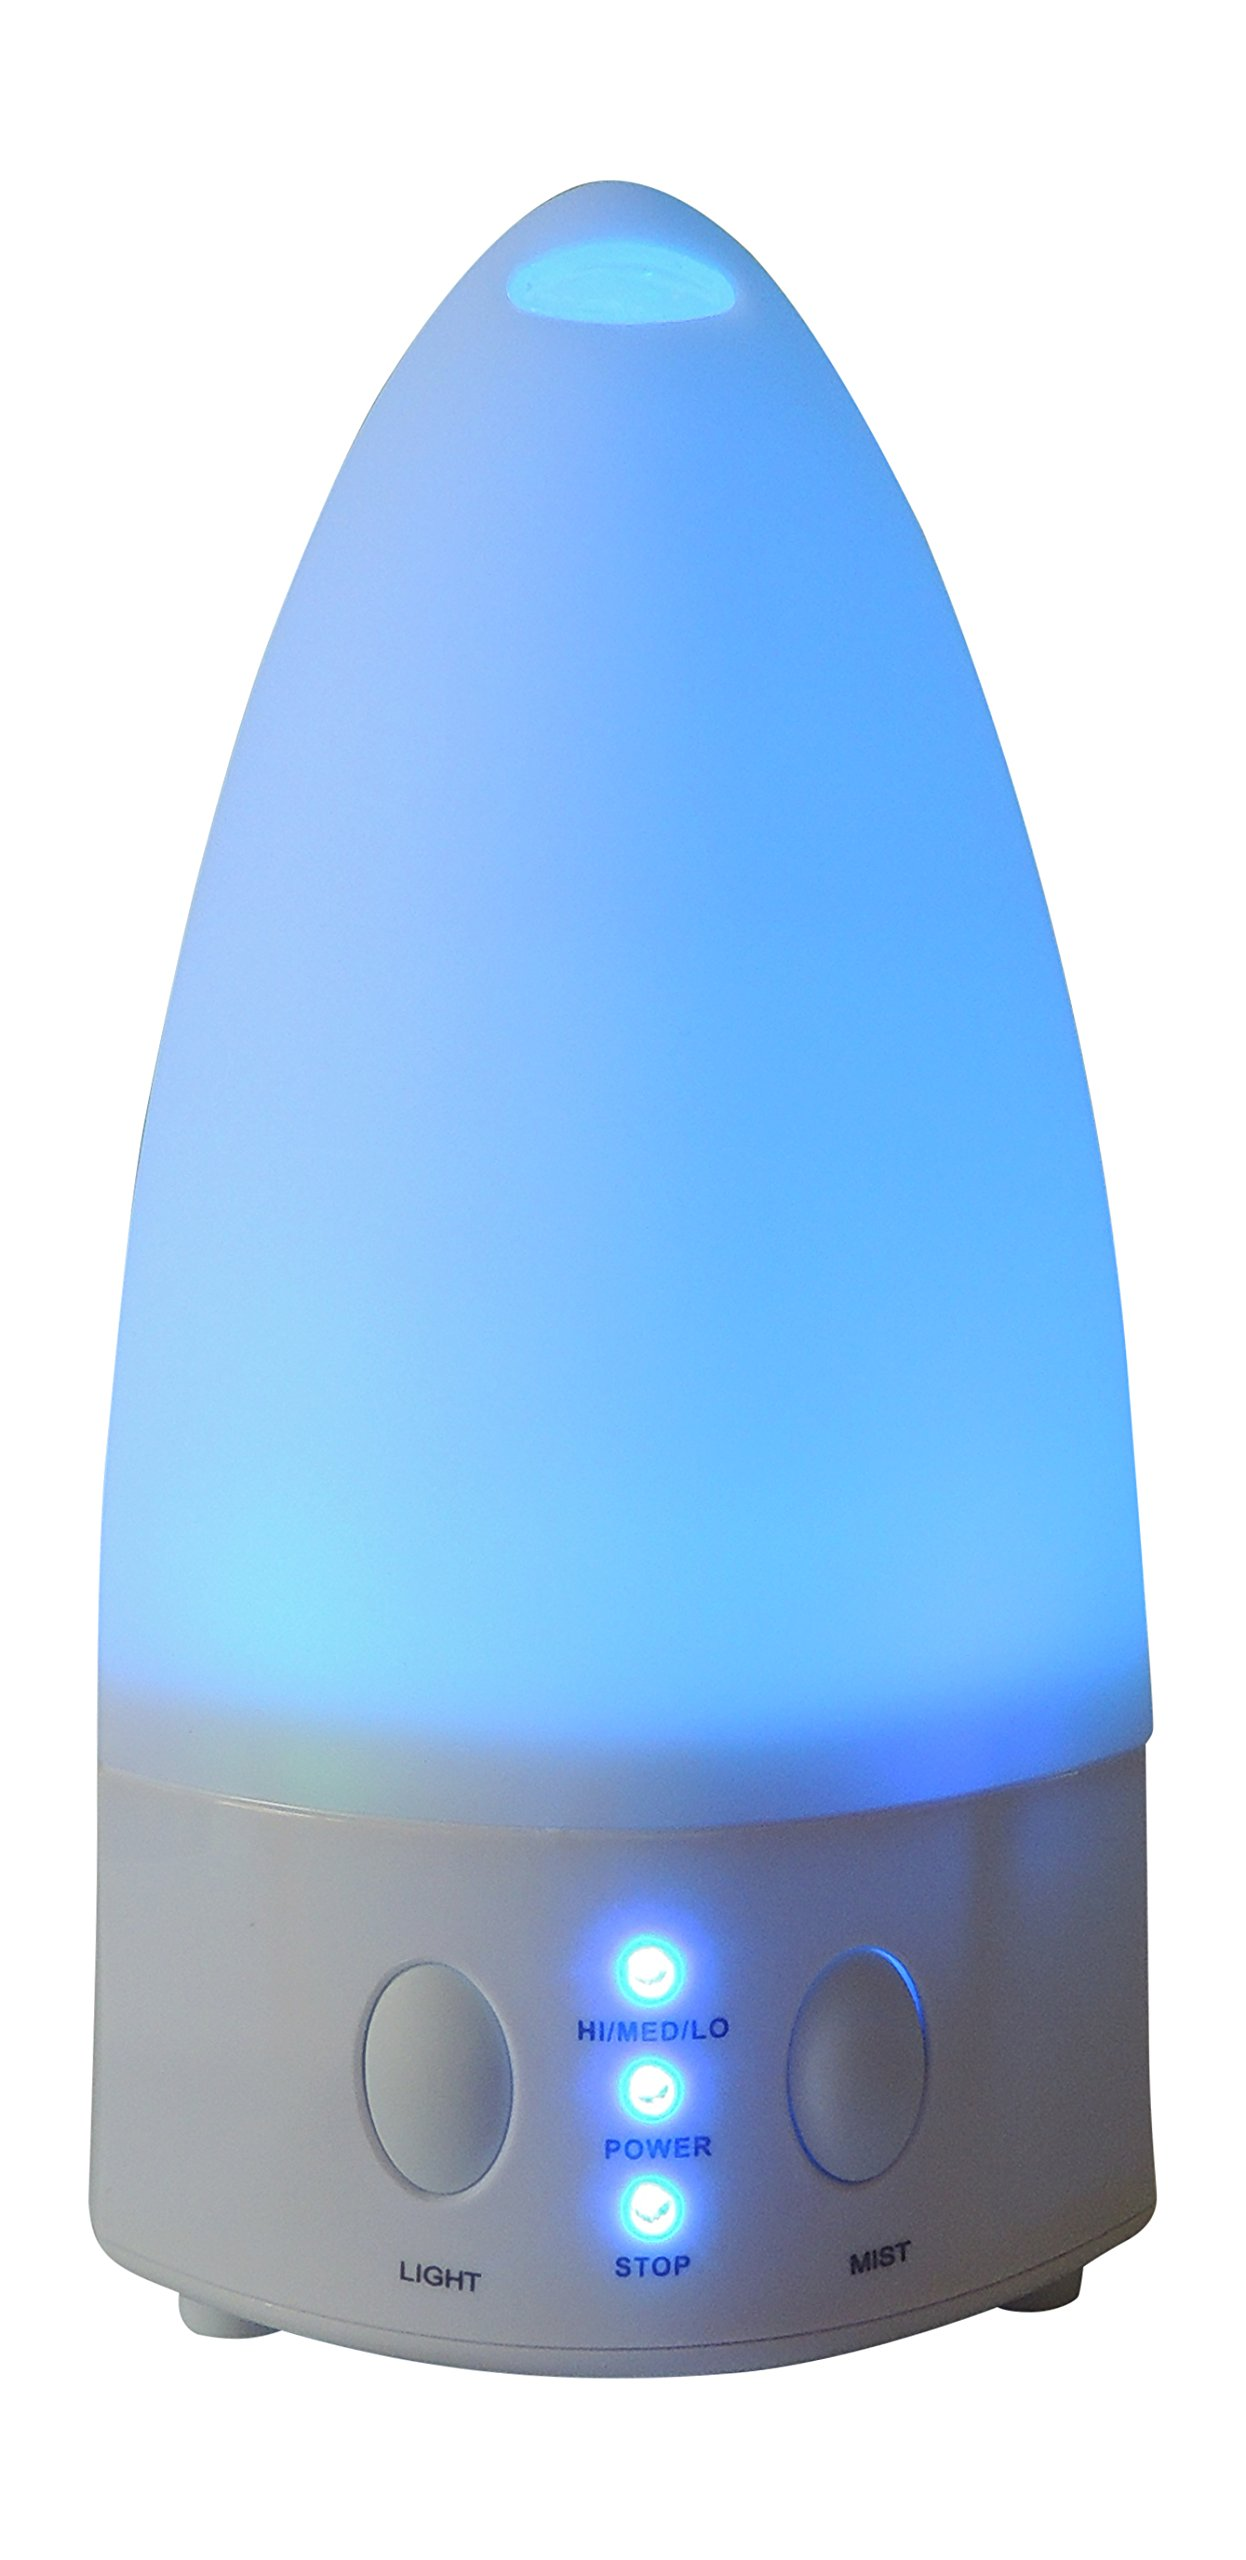 BeAStar Aromatherapy Essential Oil Diffuser - Mini-Humidifier with Electric Ultrasonic Technology